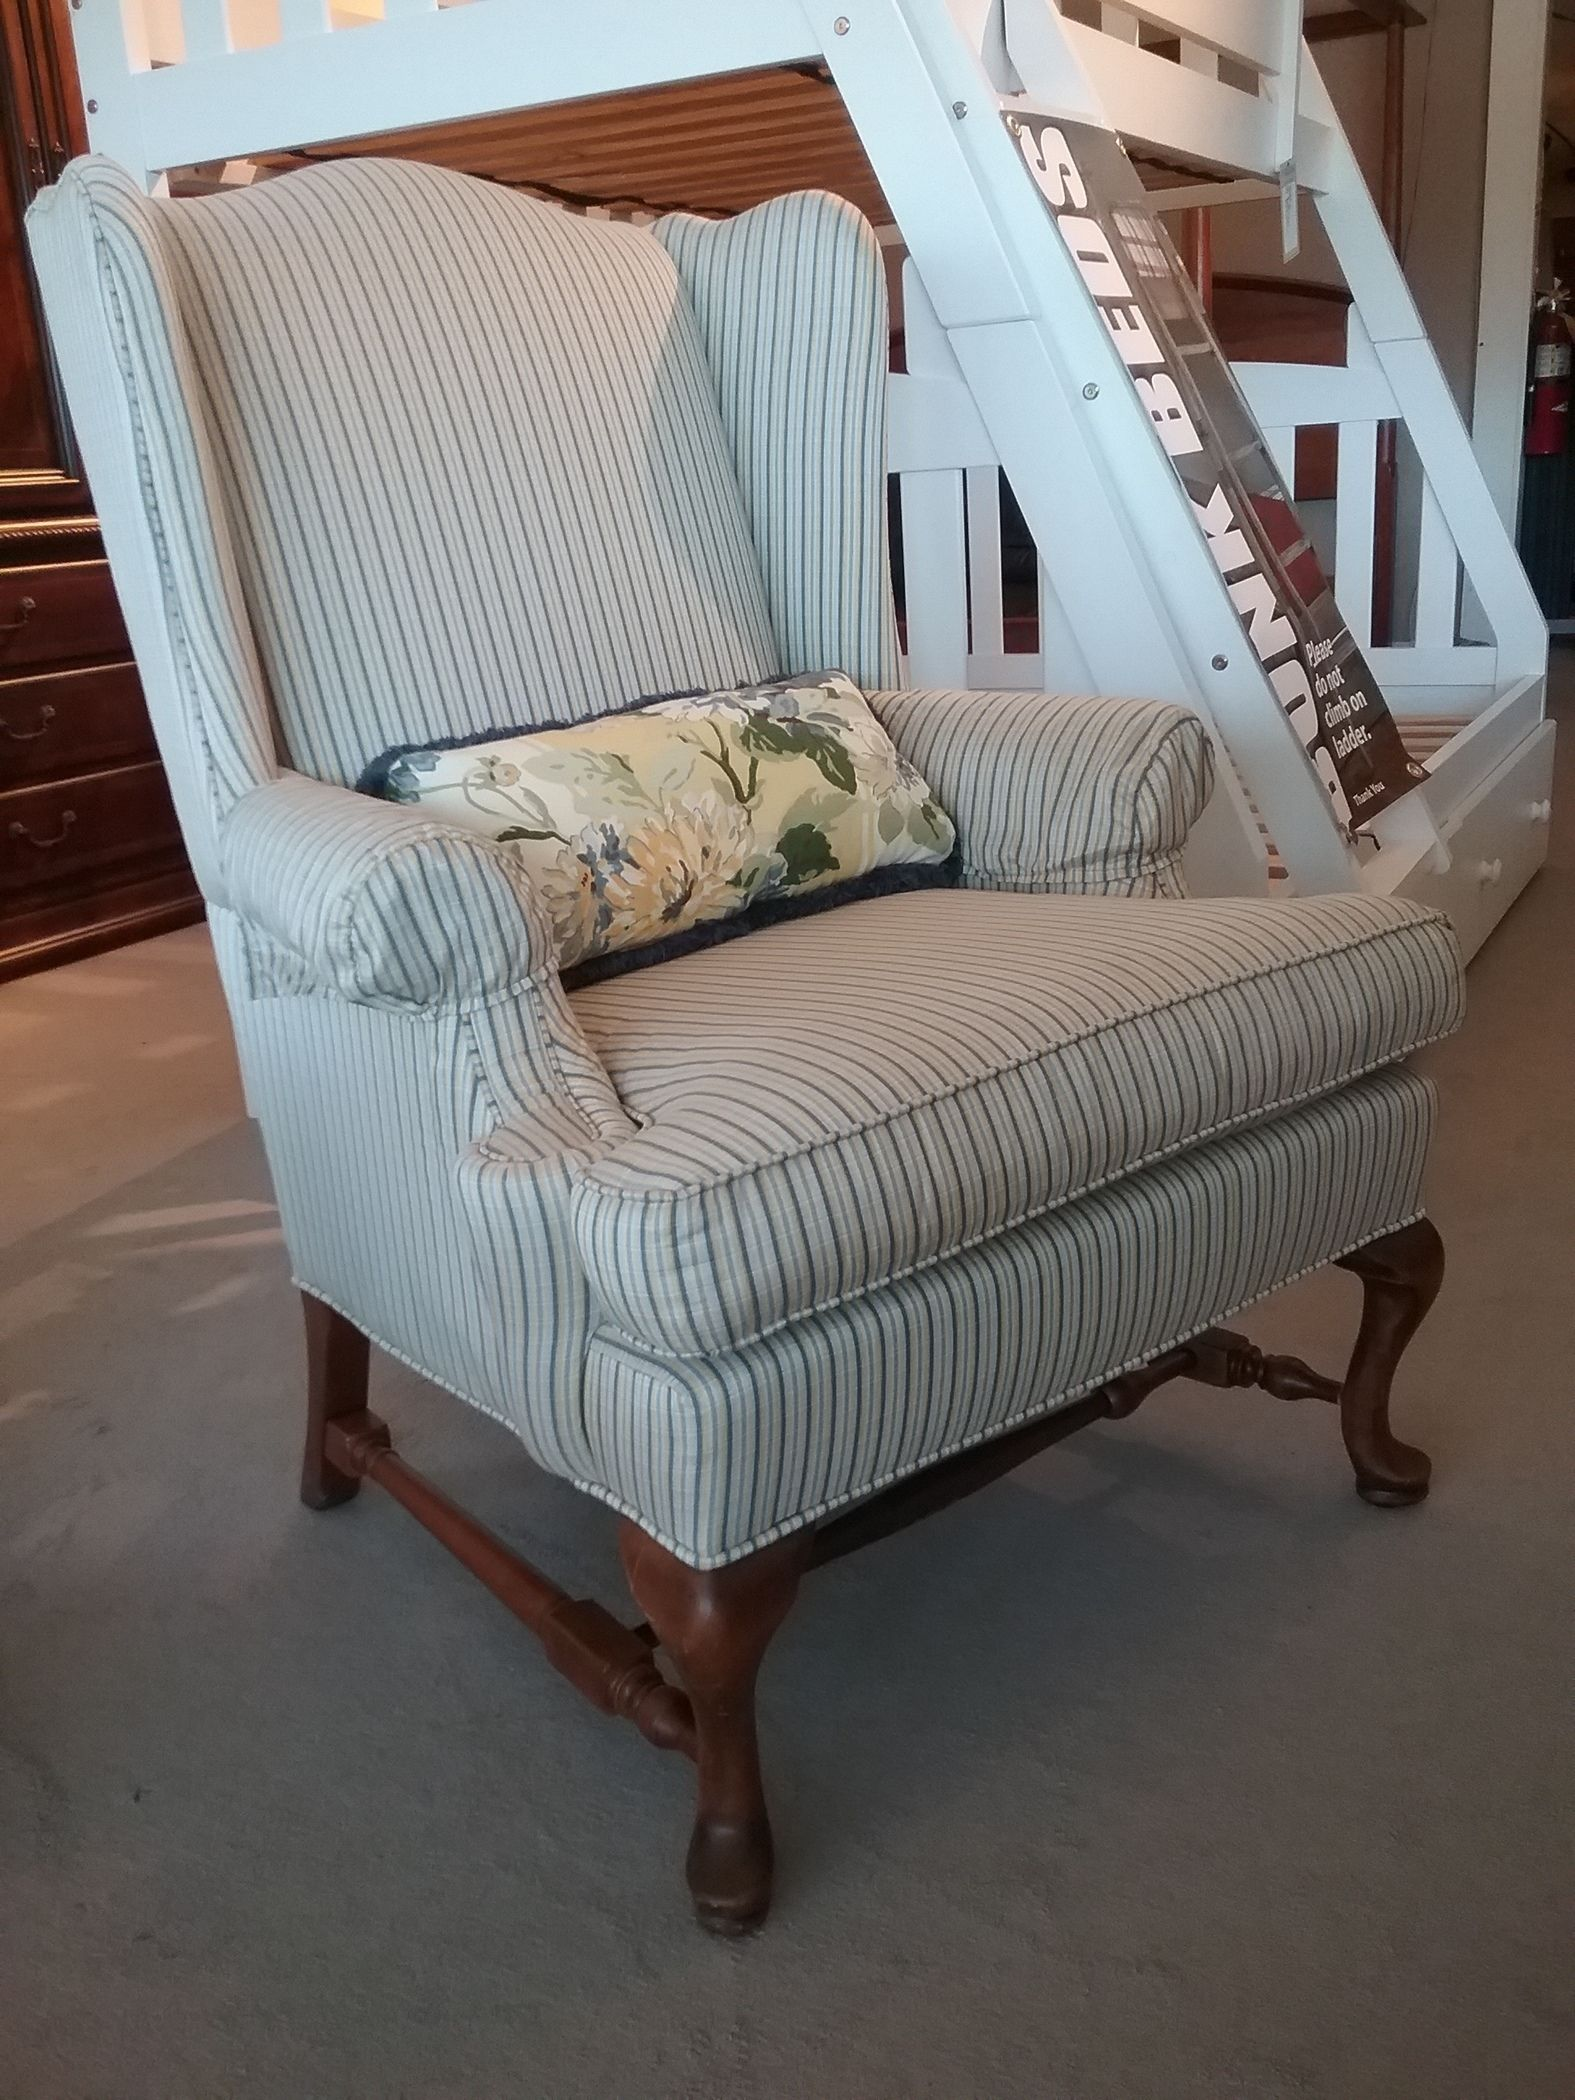 ethan allen wingback chairs best seat cushion for office chair delmarva furniture consignment